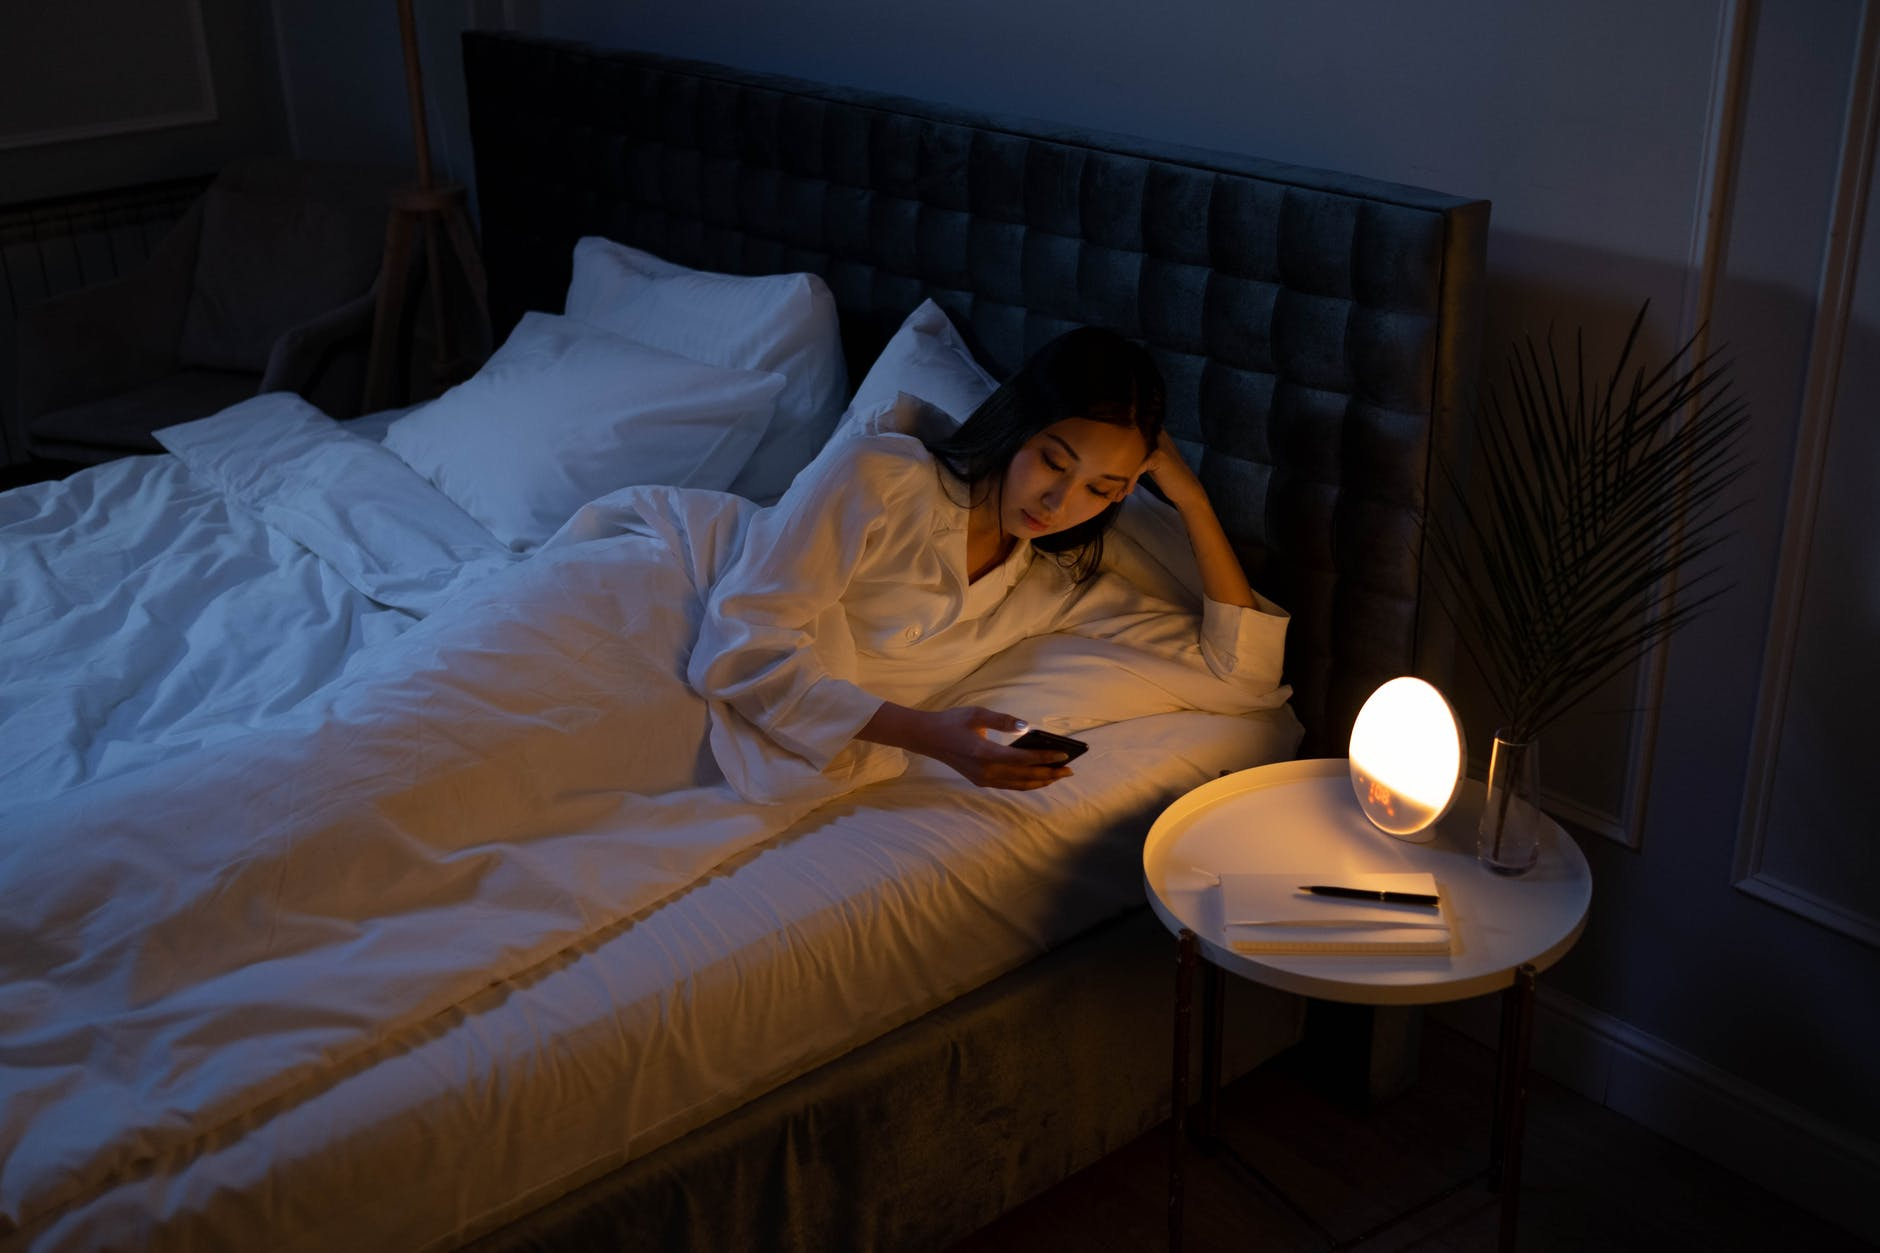 light dawn people relaxation